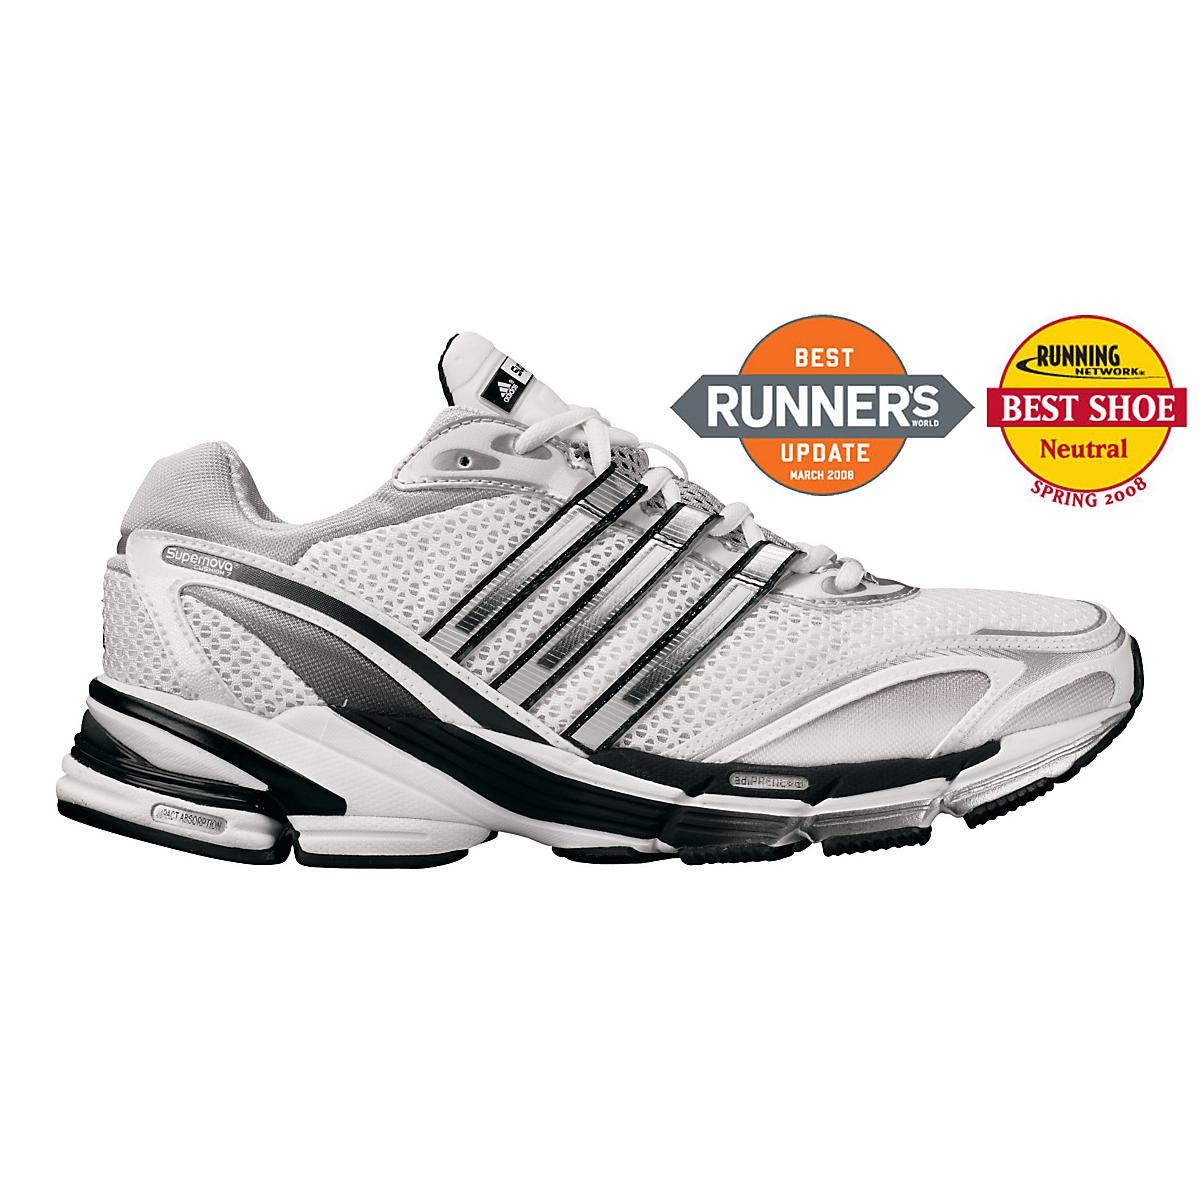 9c960c816219f Mens adidas Supernova Cushion 7 Running Shoe at Road Runner Sports